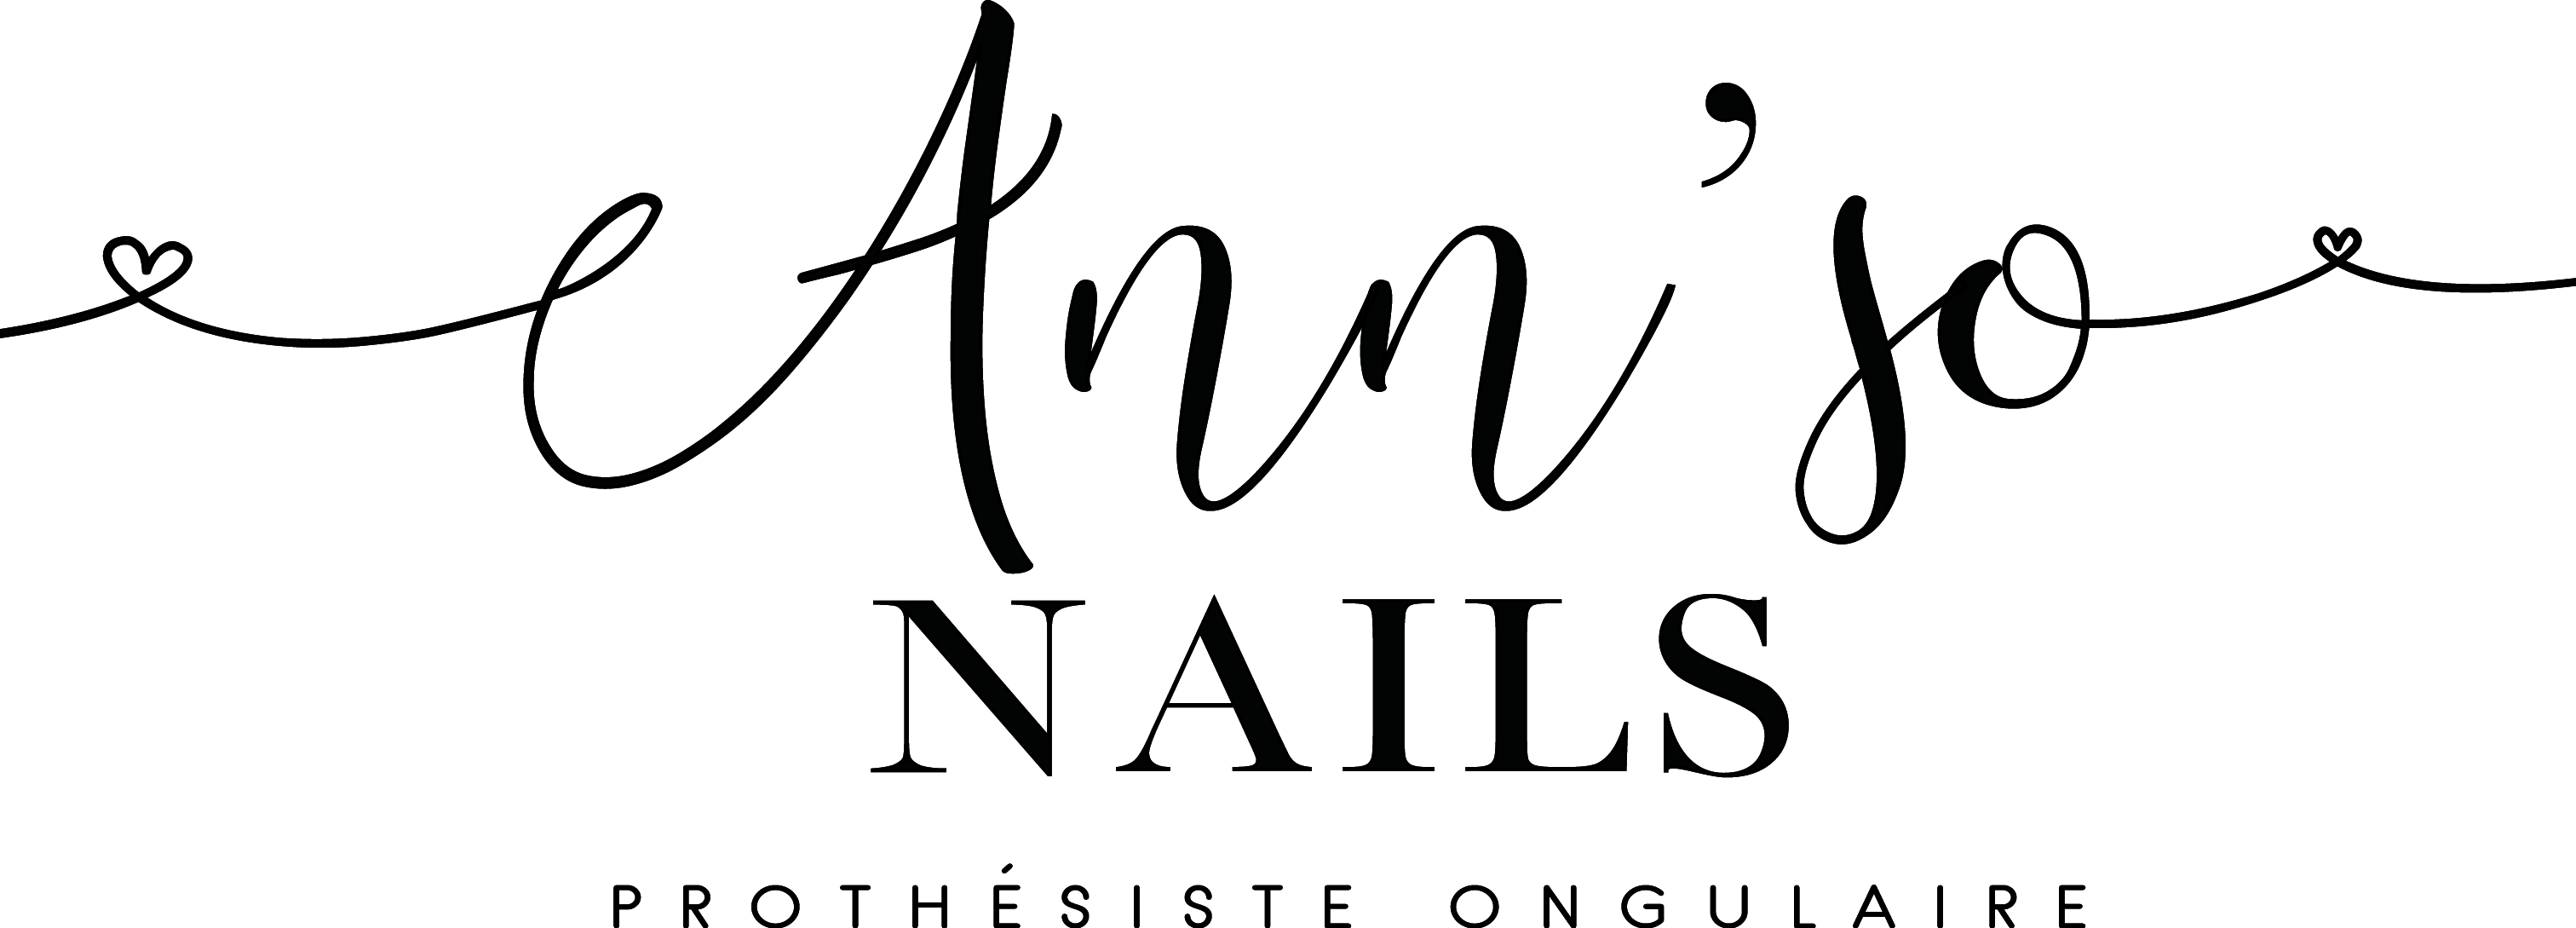 Ann'so Nails - Onglerie à Rennes